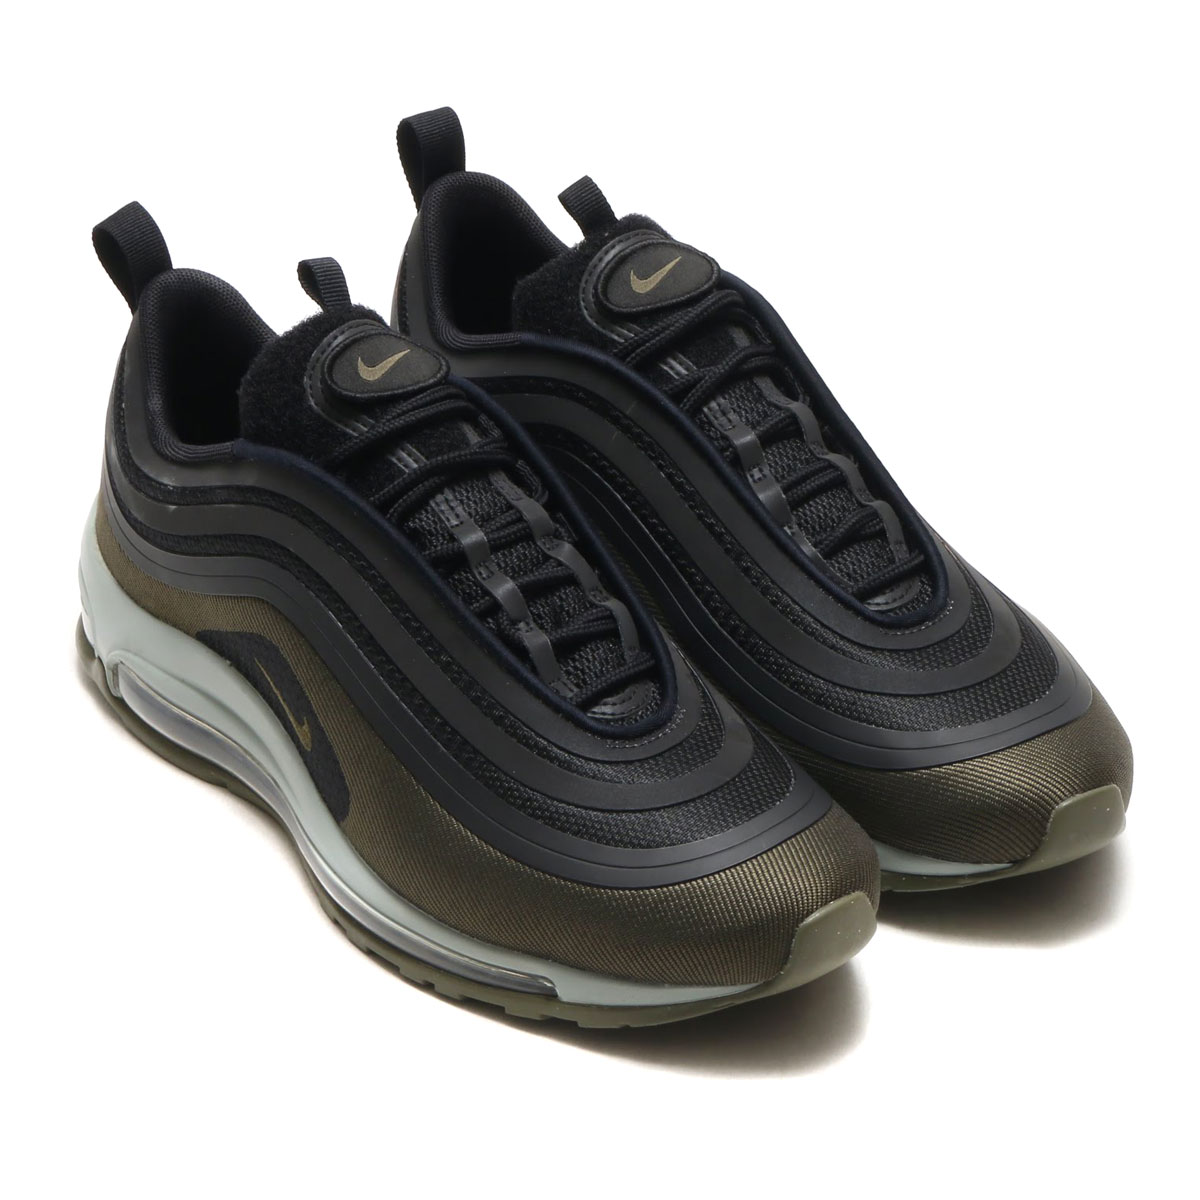 de4fea5fb57e60 NIKE AIR MAX 97 UL  17 HAL (Kie Ney AMAX 97 UL 17 HAL) (BLACK DARK HAZEL-MEDIUM  OLIVE) 18SP-S